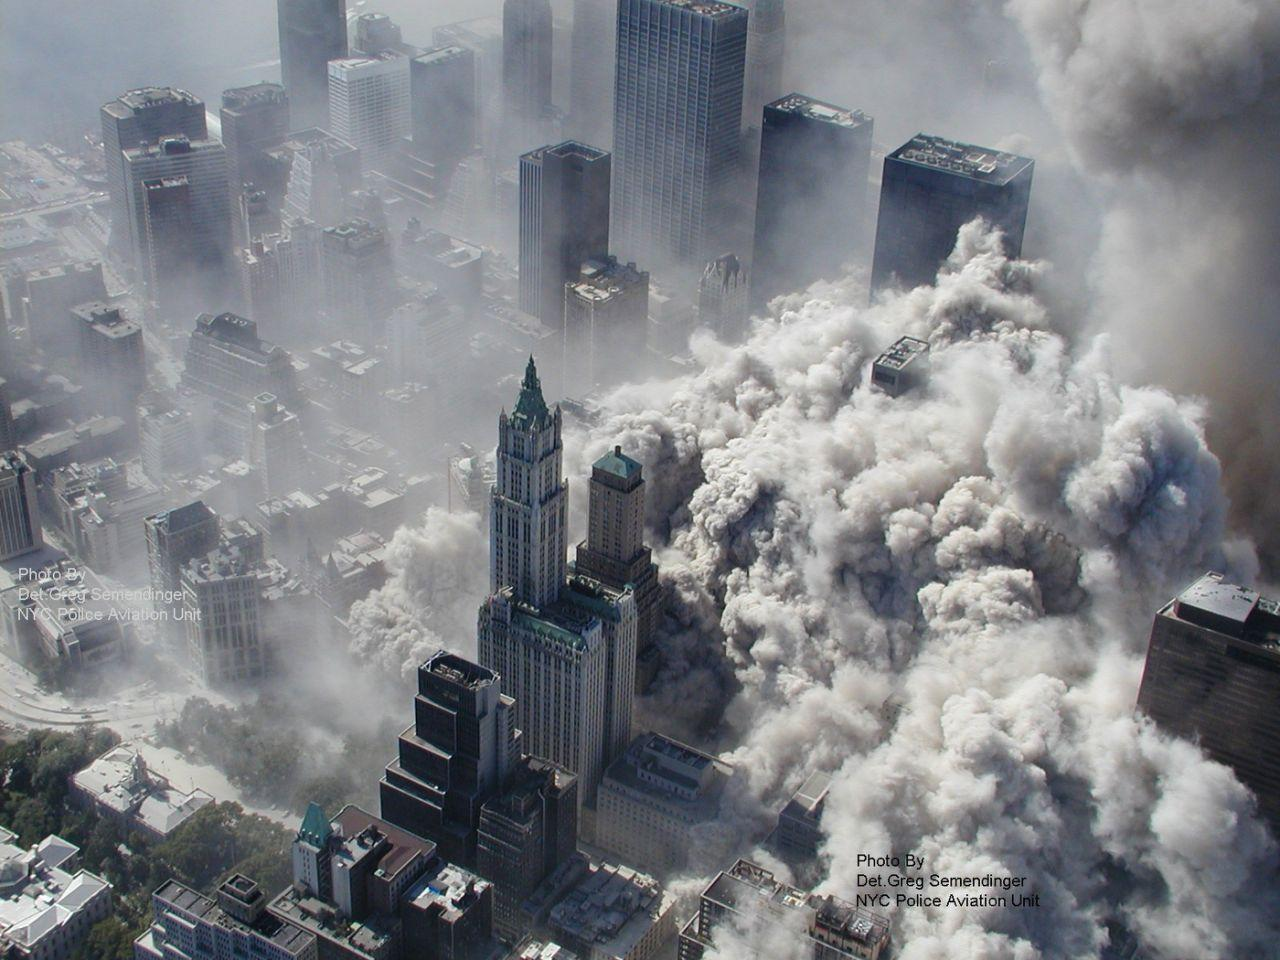 <p>A photo taken on September 11, 2001 by the New York City Police Department as the North Tower collapses, engulfing lower Manhattan in smoke and ash. <br /><br />(Photo: AP Photo/NYPD, Det. Greg Semendinger)<br /><br /></p>